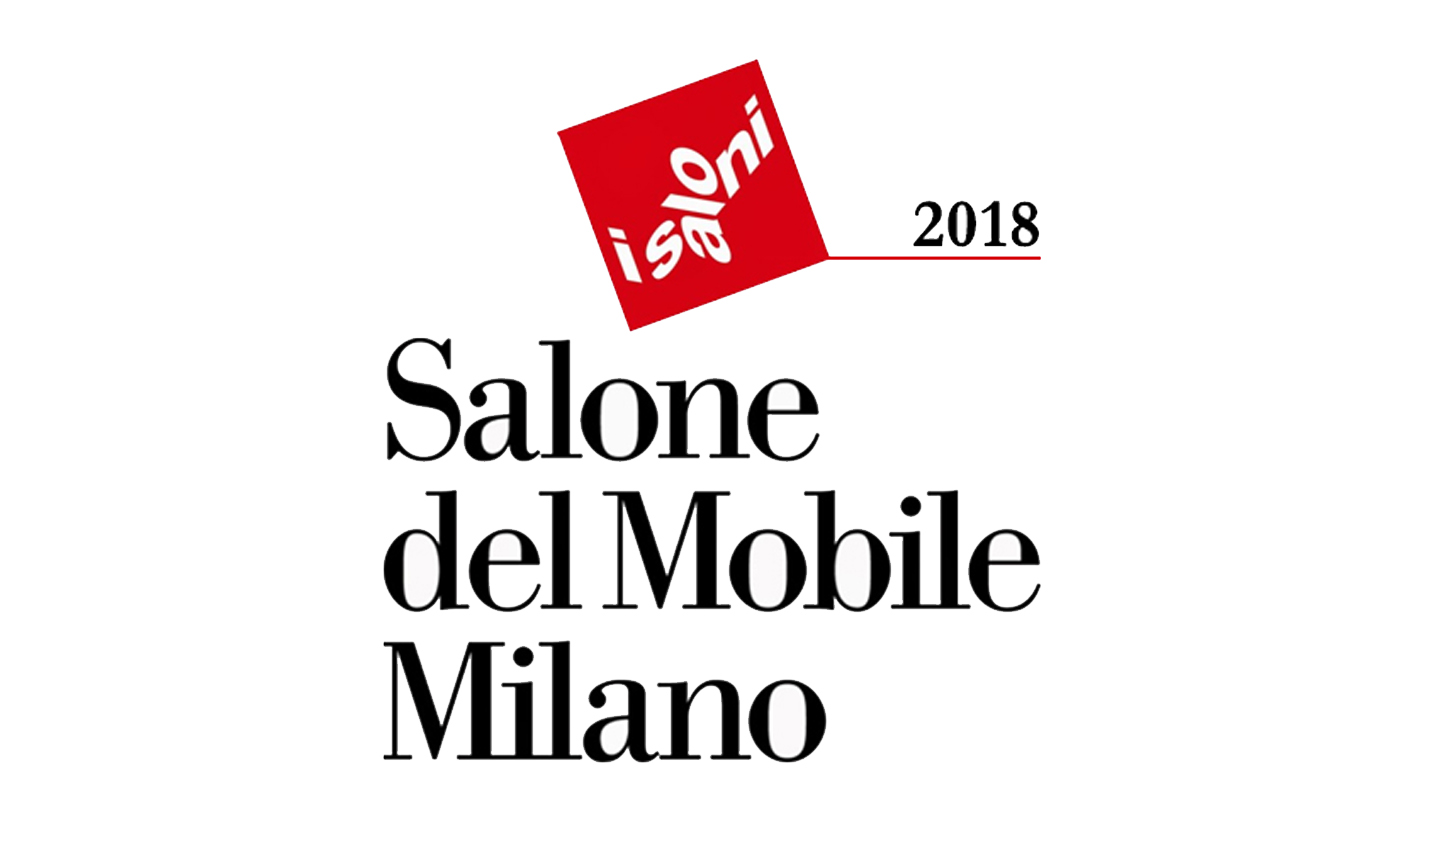 Meet The Winners of the CovetED Awards Presented at iSaloni 2018 lake hotels in italy Discover The Best Lake Hotels In Italy Meet The Winners of the CovetED Awards Presented at iSaloni 2018 01 lake hotels in italy Discover The Best Lake Hotels In Italy Meet The Winners of the CovetED Awards Presented at iSaloni 2018 01